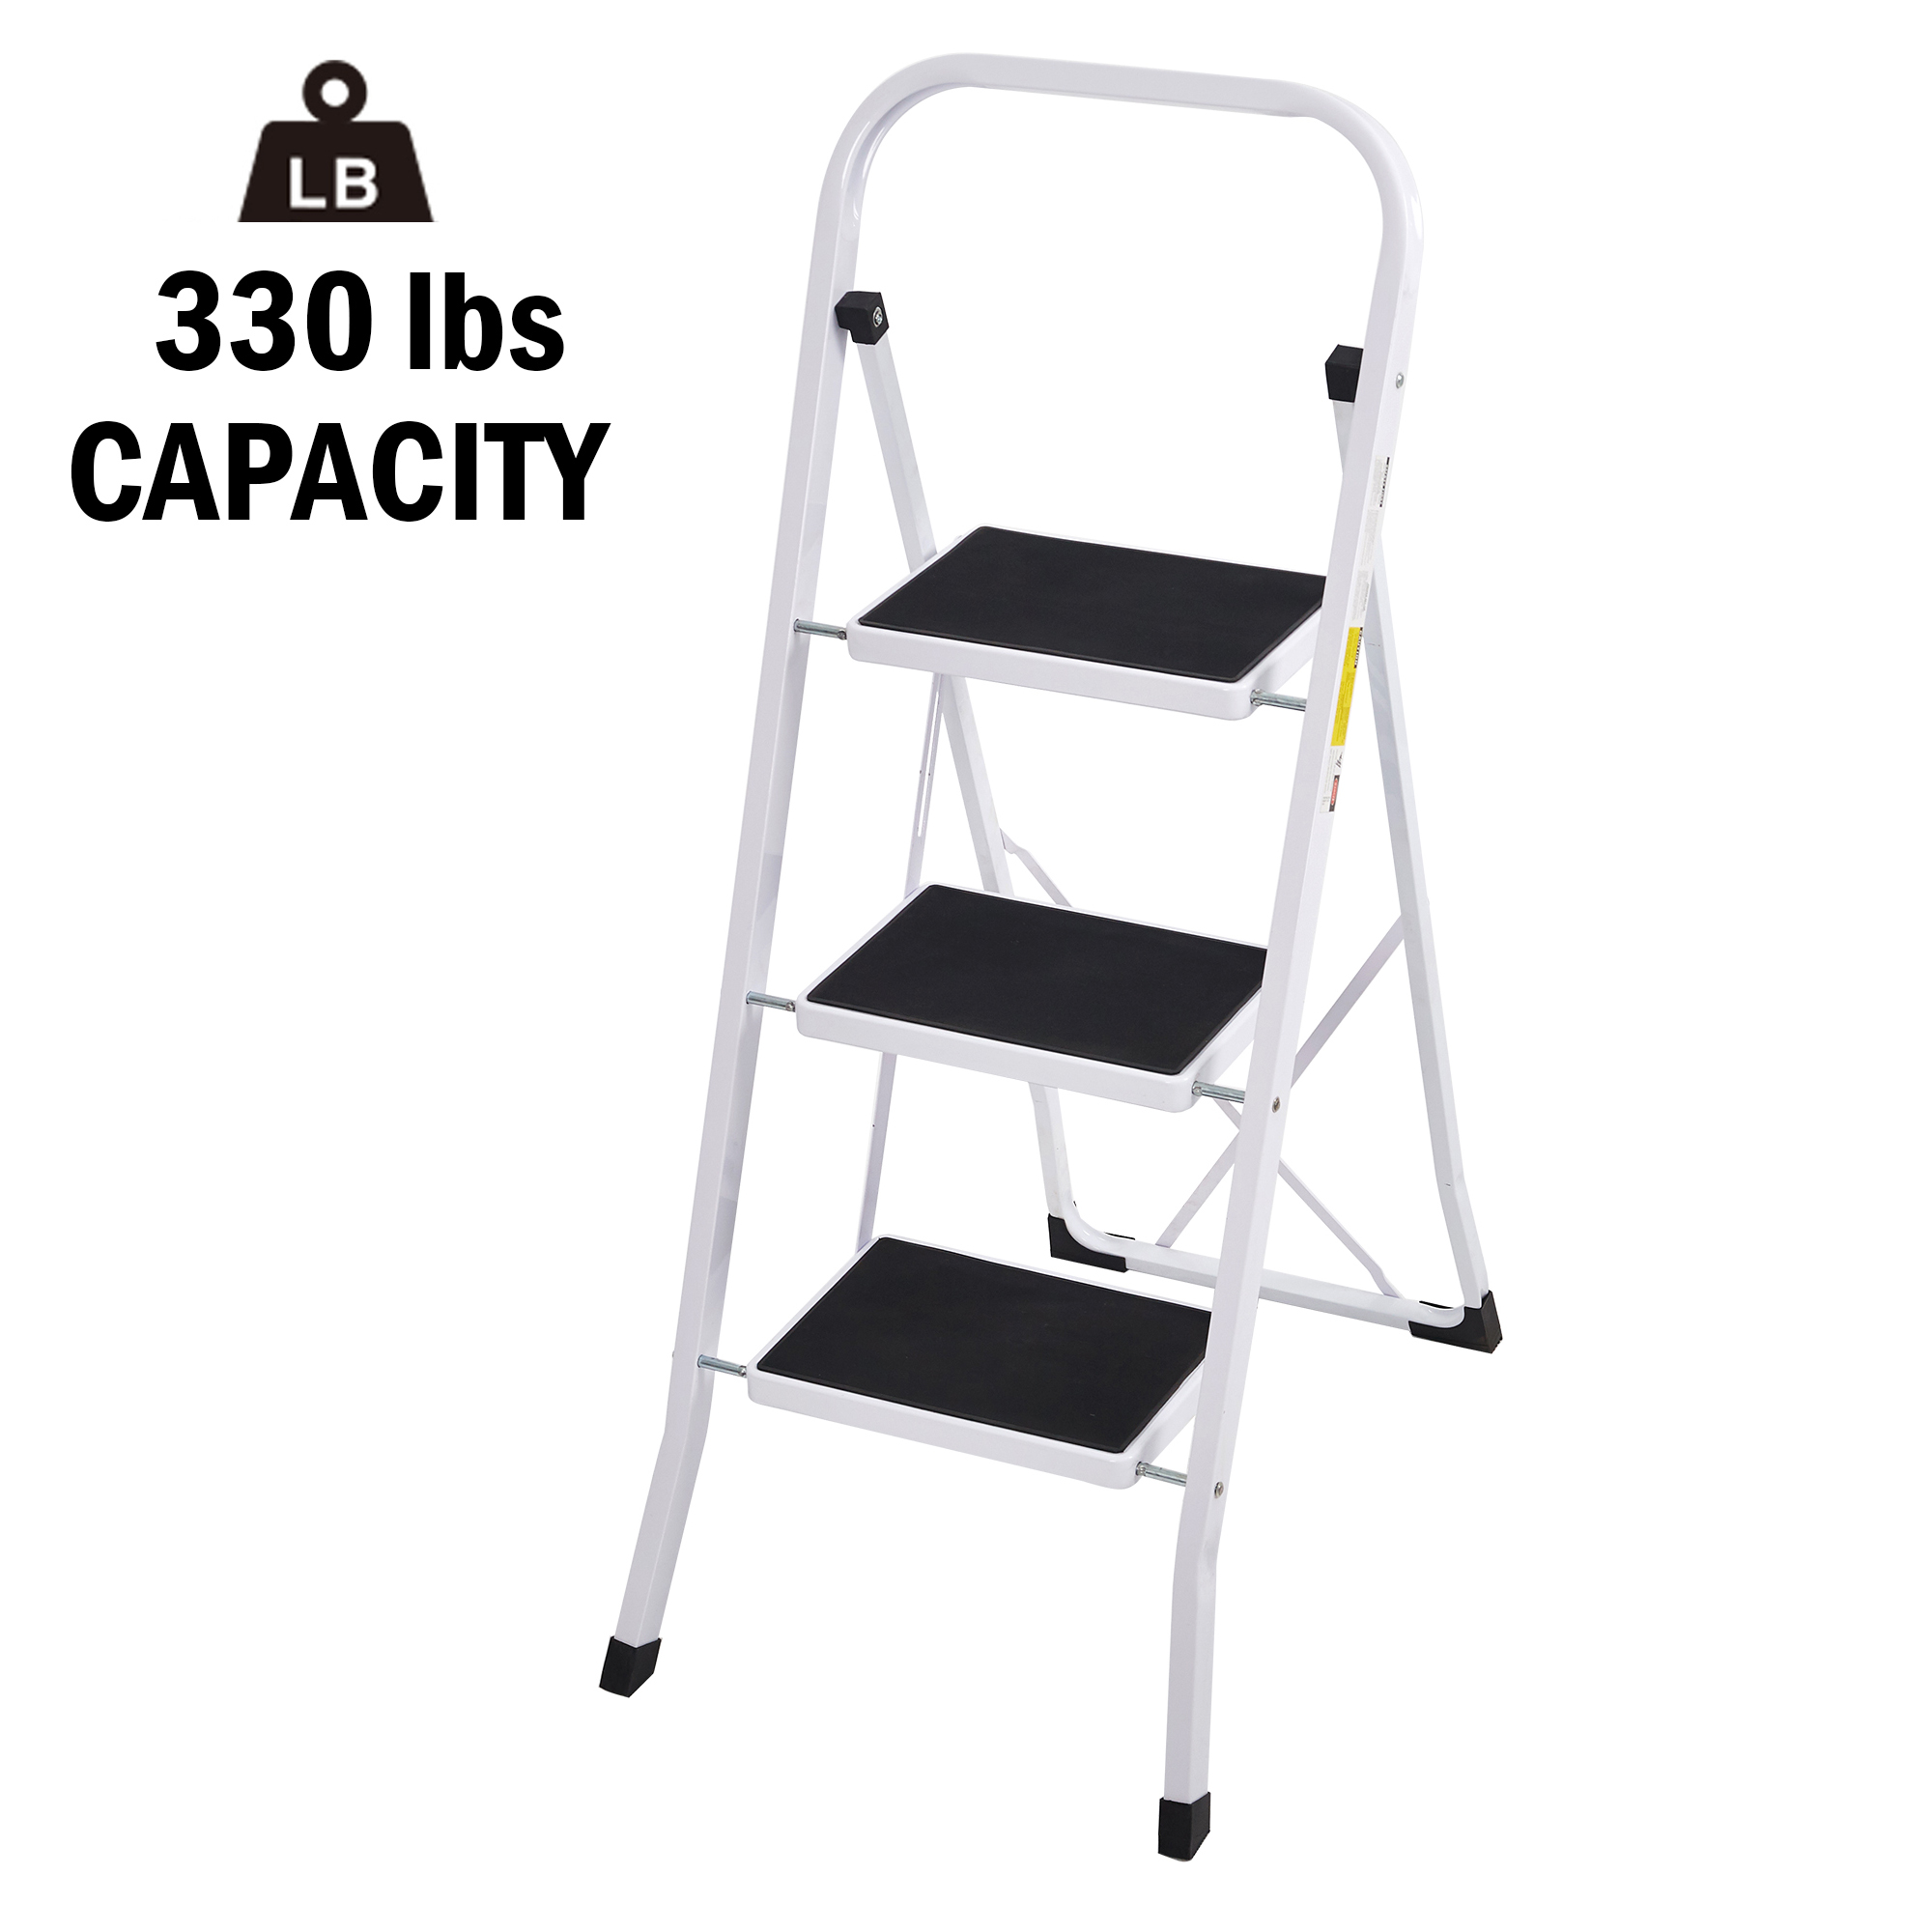 CharaHome 4 Step Ladder Step Stool Folding Portable Ladder Steel Frame with Safety Side Handrails Non-Slip Wide Pedal Kitchen and Home Stepladder with Attachable Tool Bag 450 lb Capacity